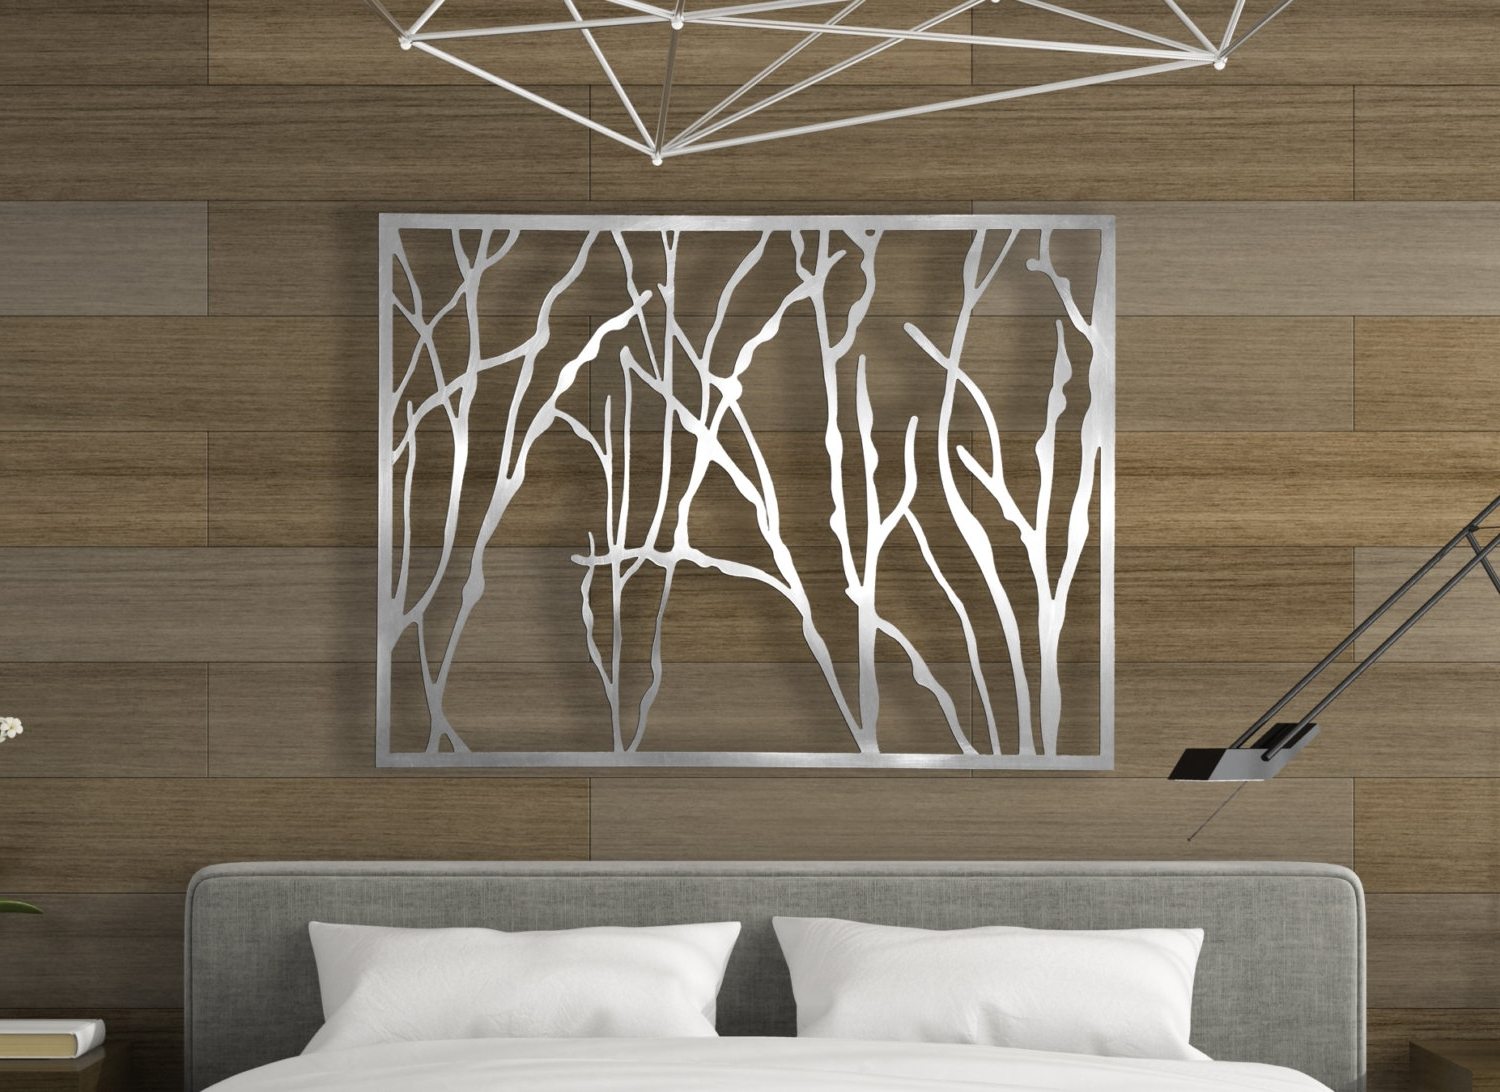 Metal Wall Art Panels With Widely Used Popular Metal Wall Art Panels : Andrews Living Arts – Good Design (View 12 of 15)